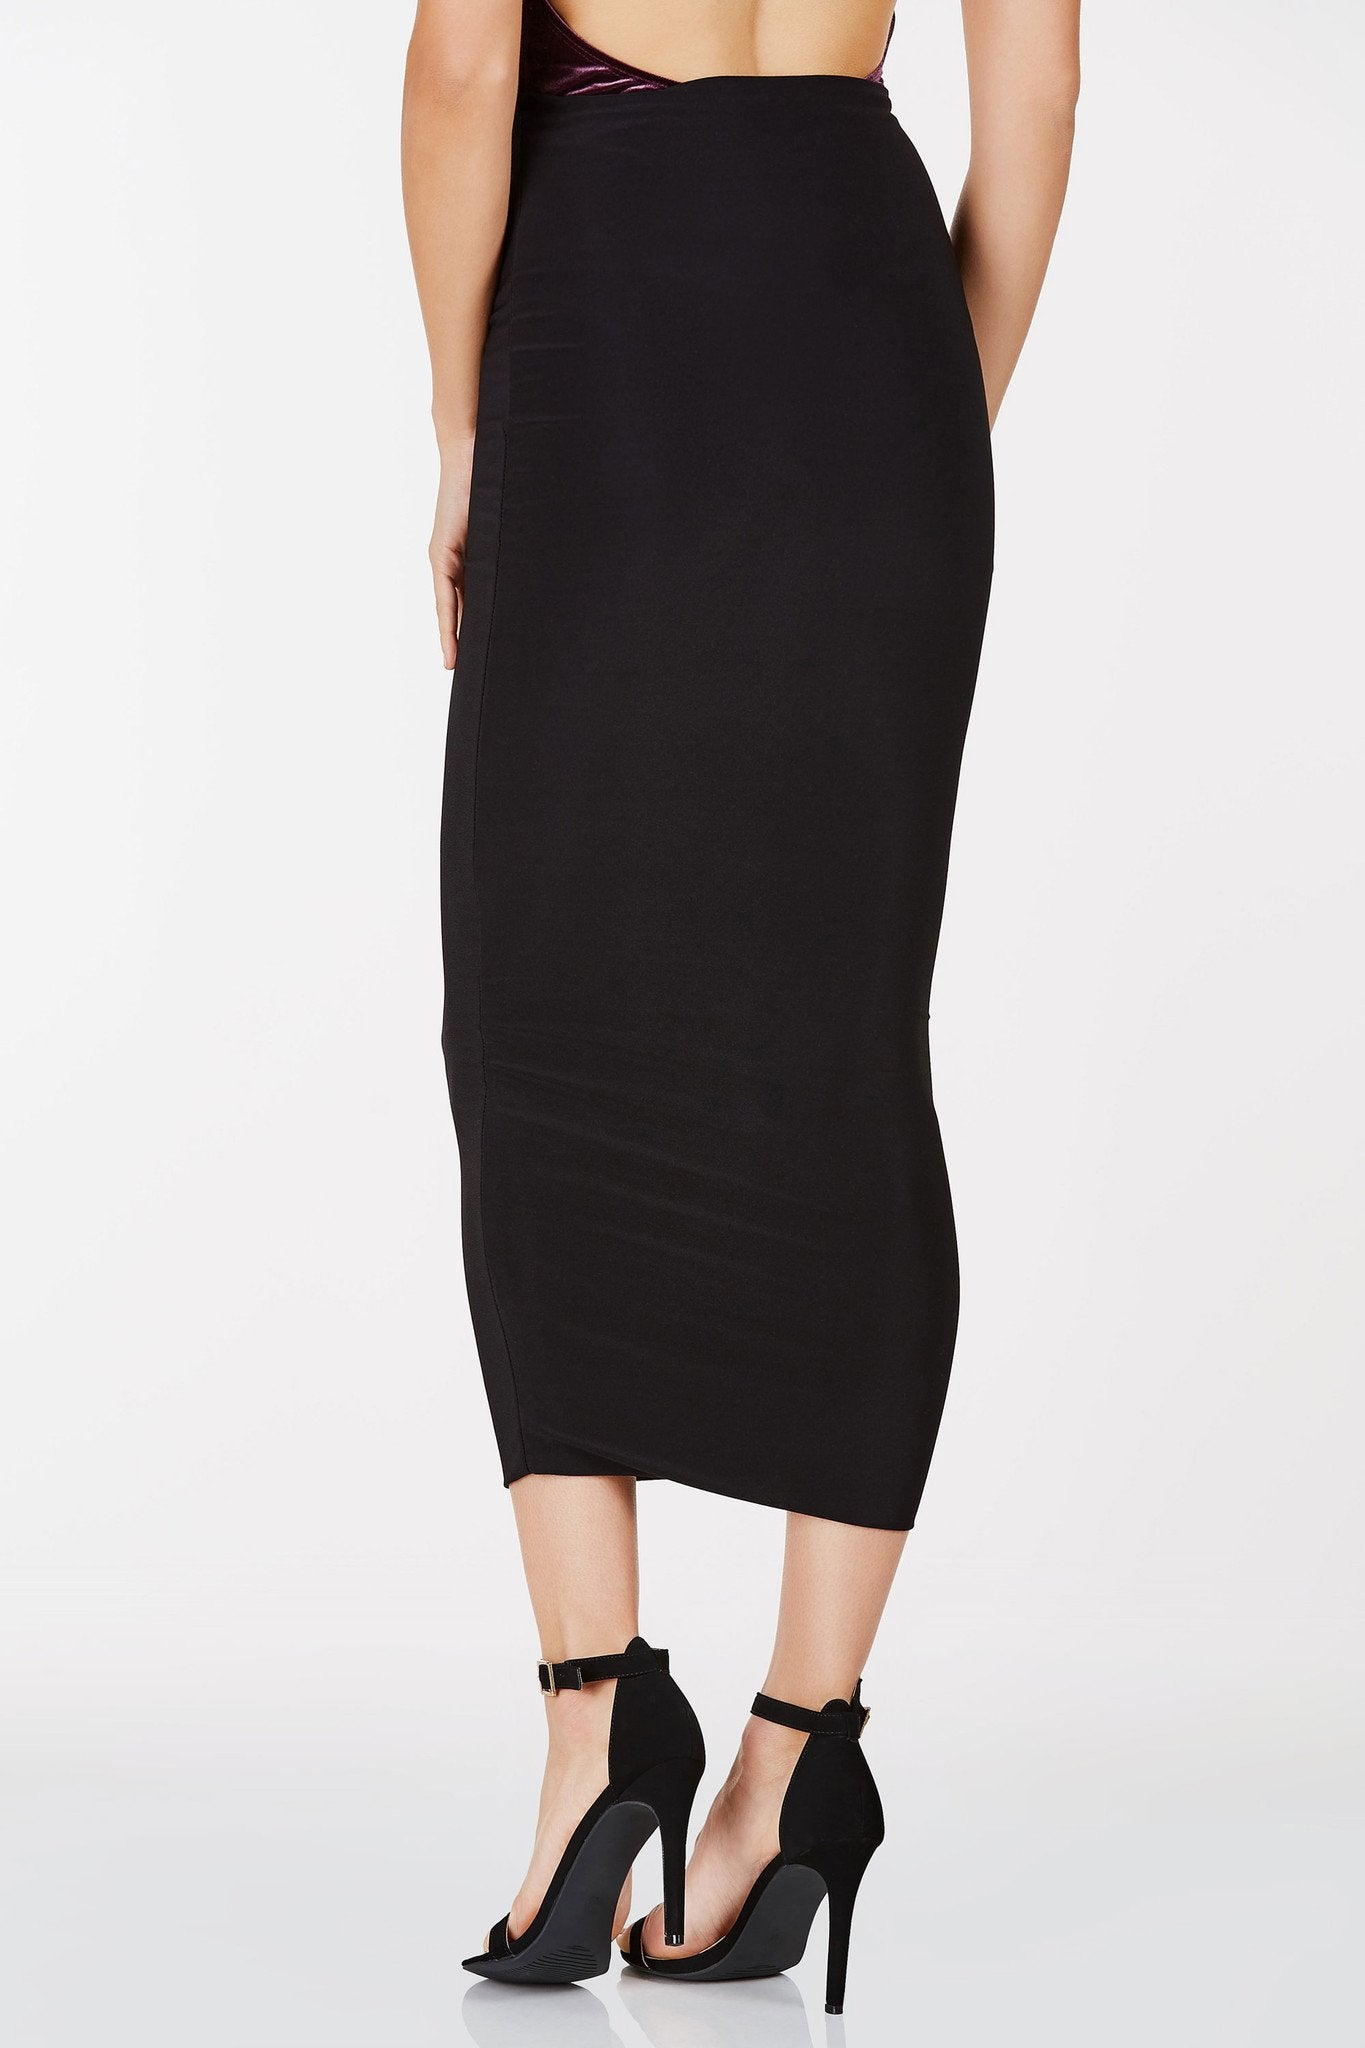 High rise midi skirt with full lining. Stretchy fabric with bodycon fit.